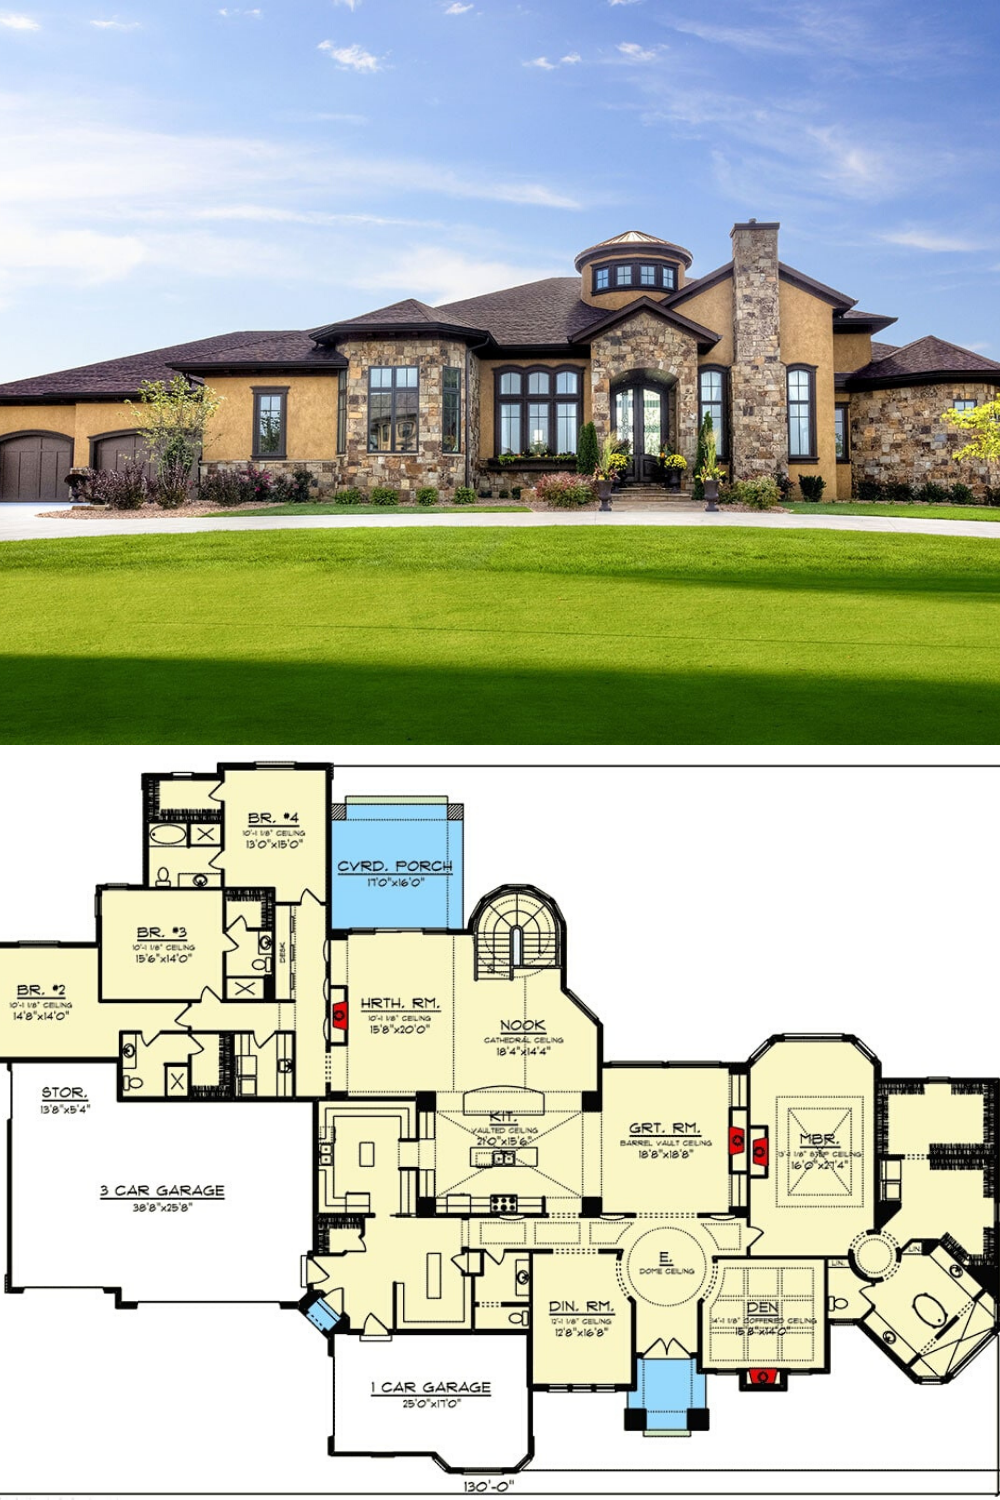 Single Story 5 Bedroom Tuscan Home With Finished Walkout Basement Floor Plan Single Level House Plans Large House Plans Basement House Plans